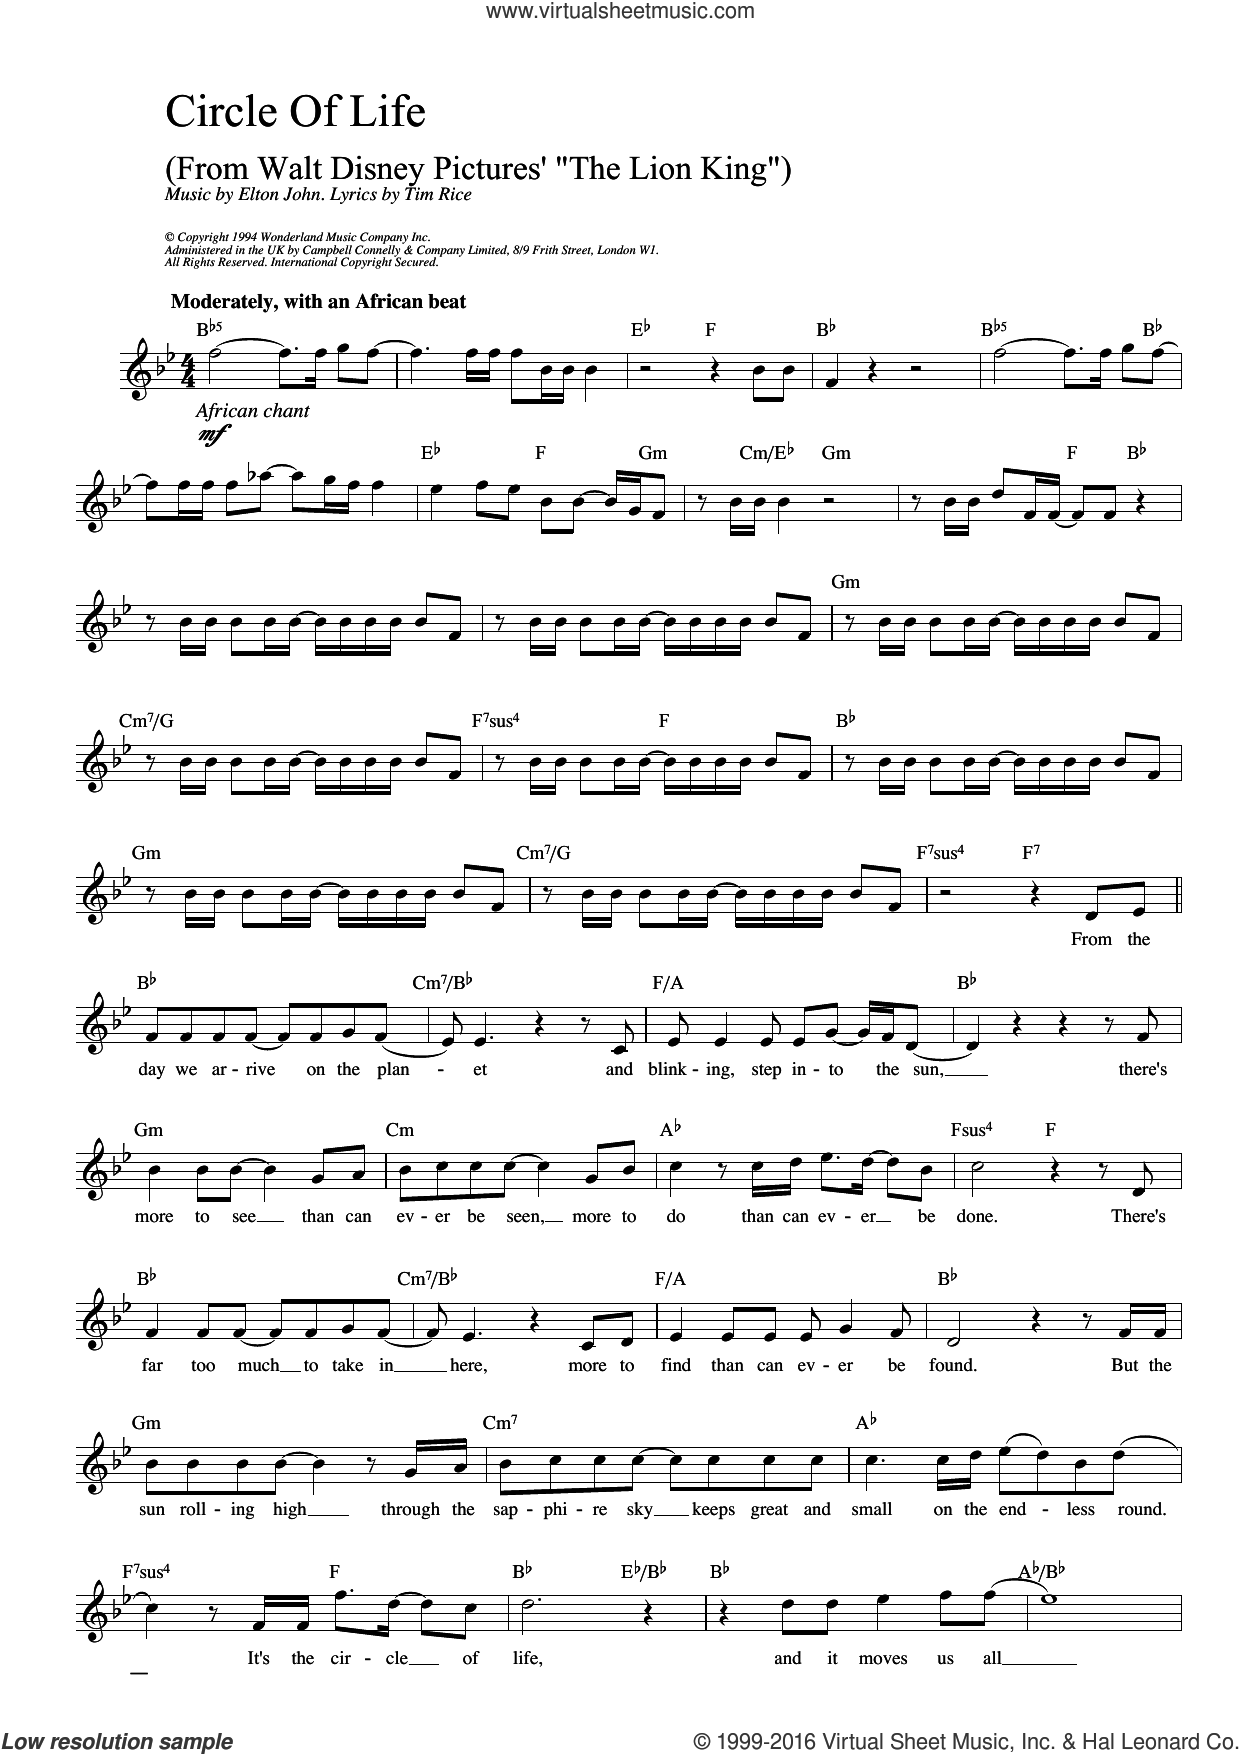 Circle Of Life (from The Lion King) sheet music for voice and other instruments (fake book) by Elton John and Tim Rice, intermediate skill level